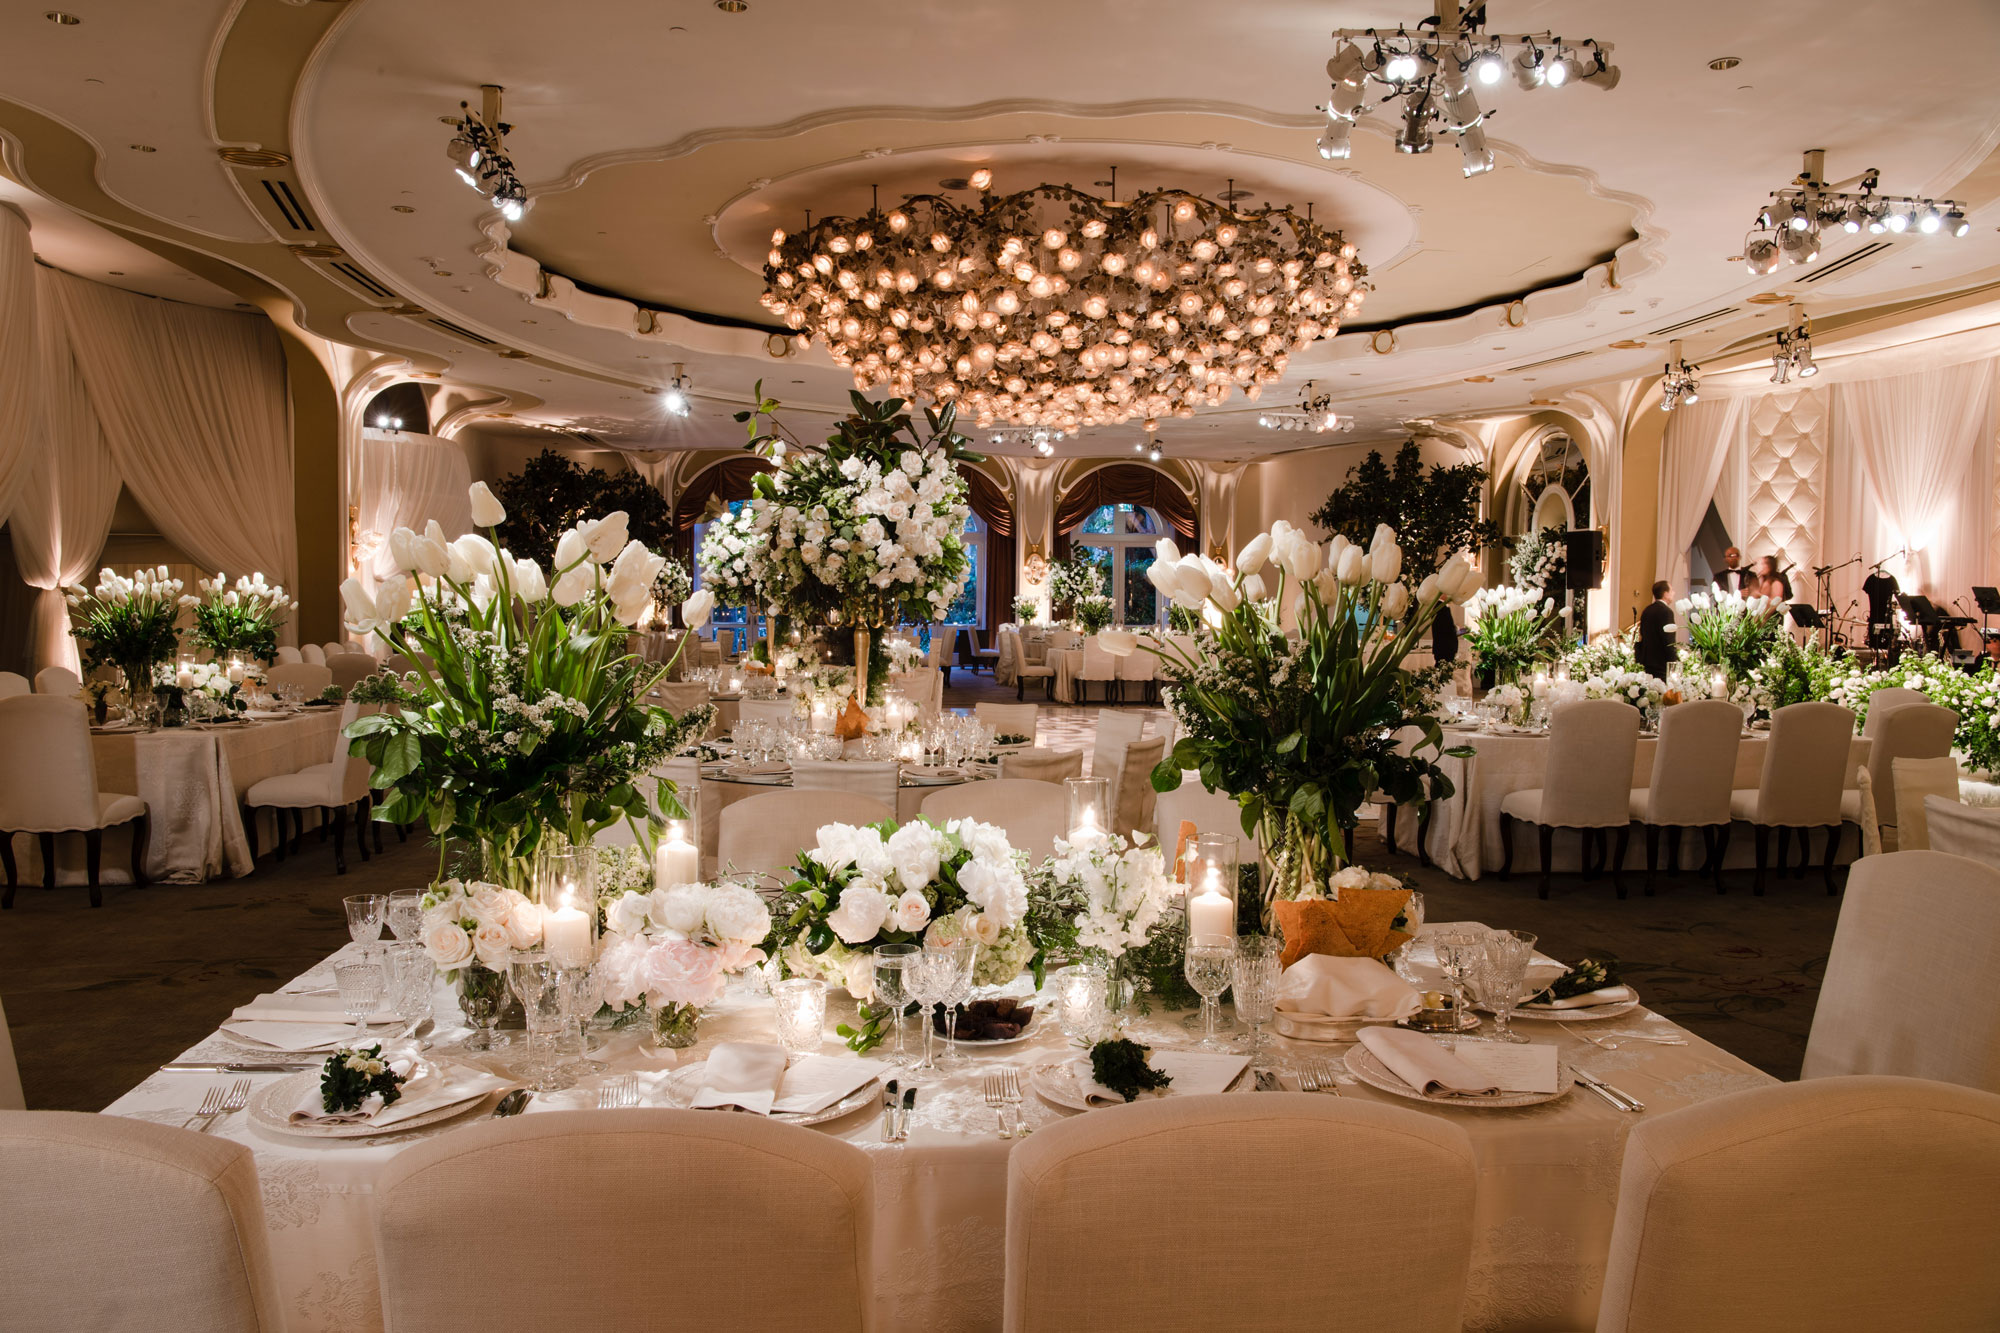 Inside Weddings Spring 2017 issue ballroom wedding Levine Fox Events beverly hills